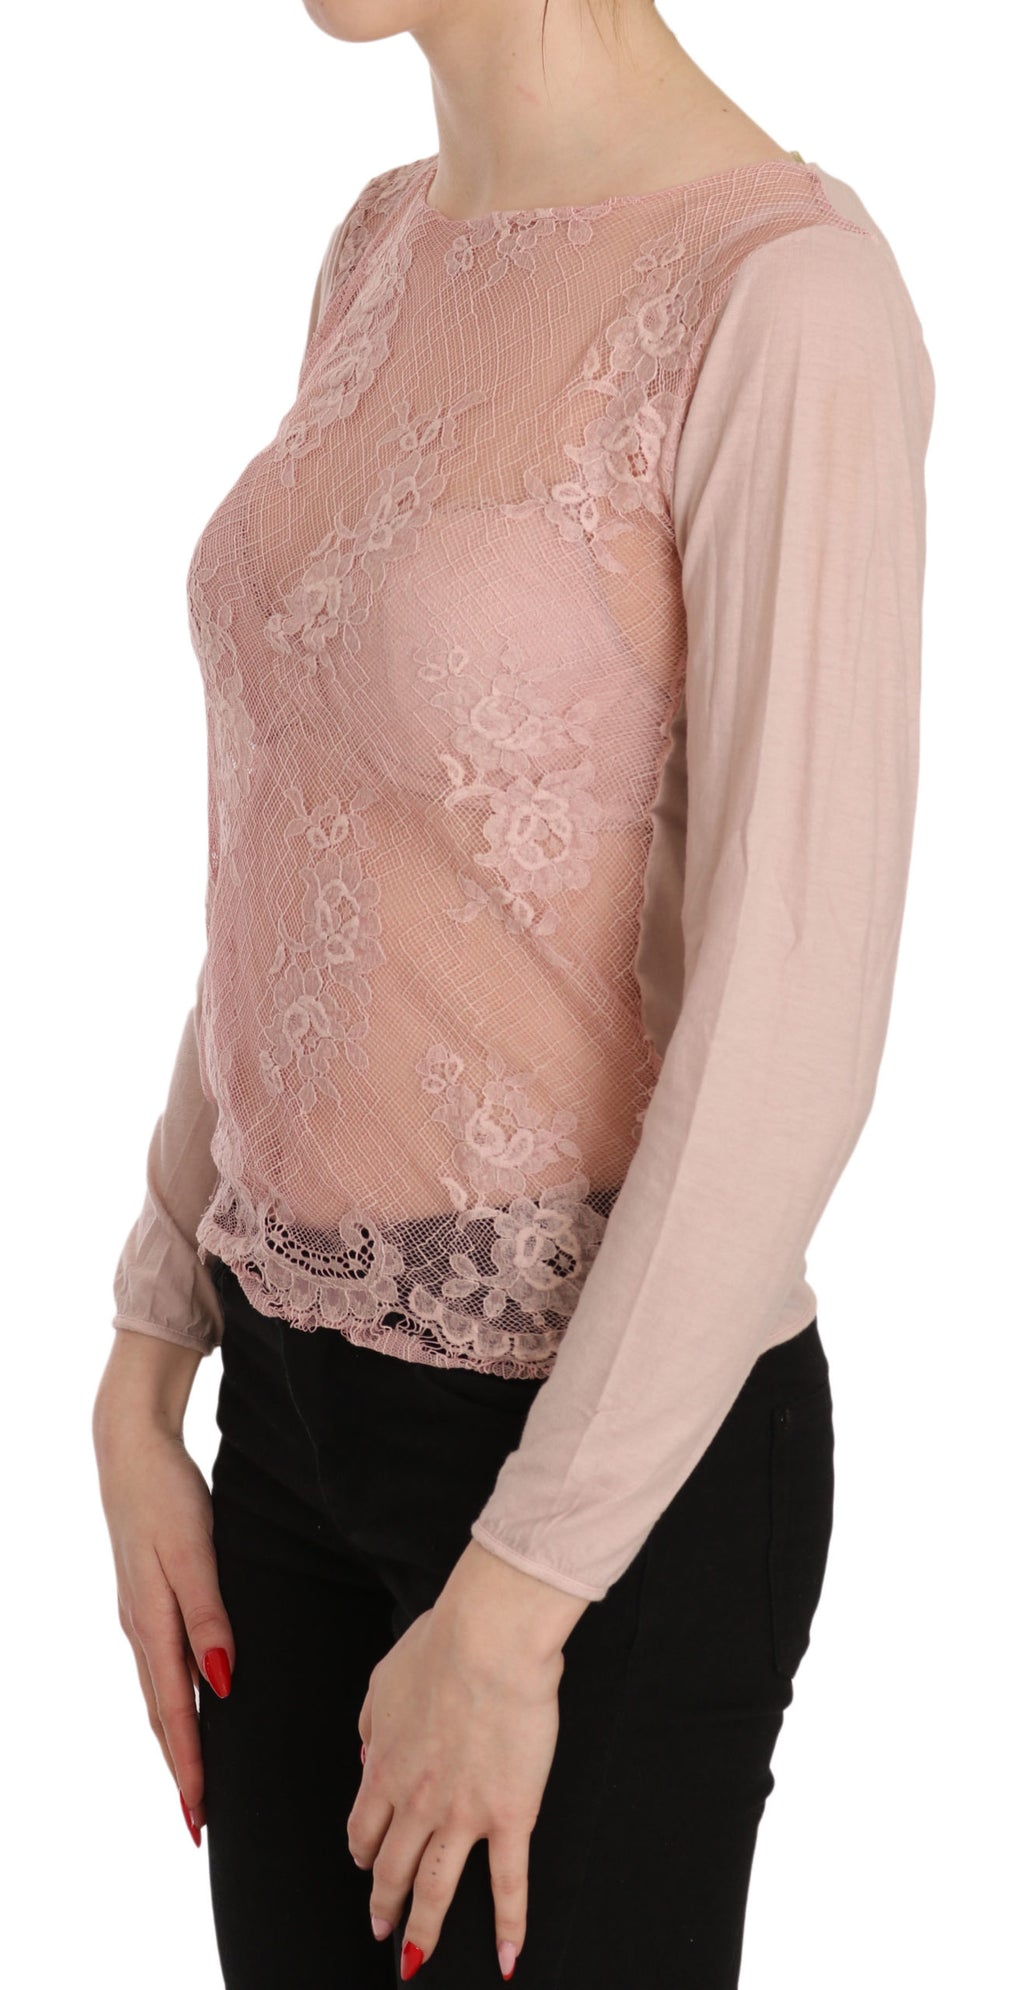 Pink Lace See Through Long Sleeve Top Blouse